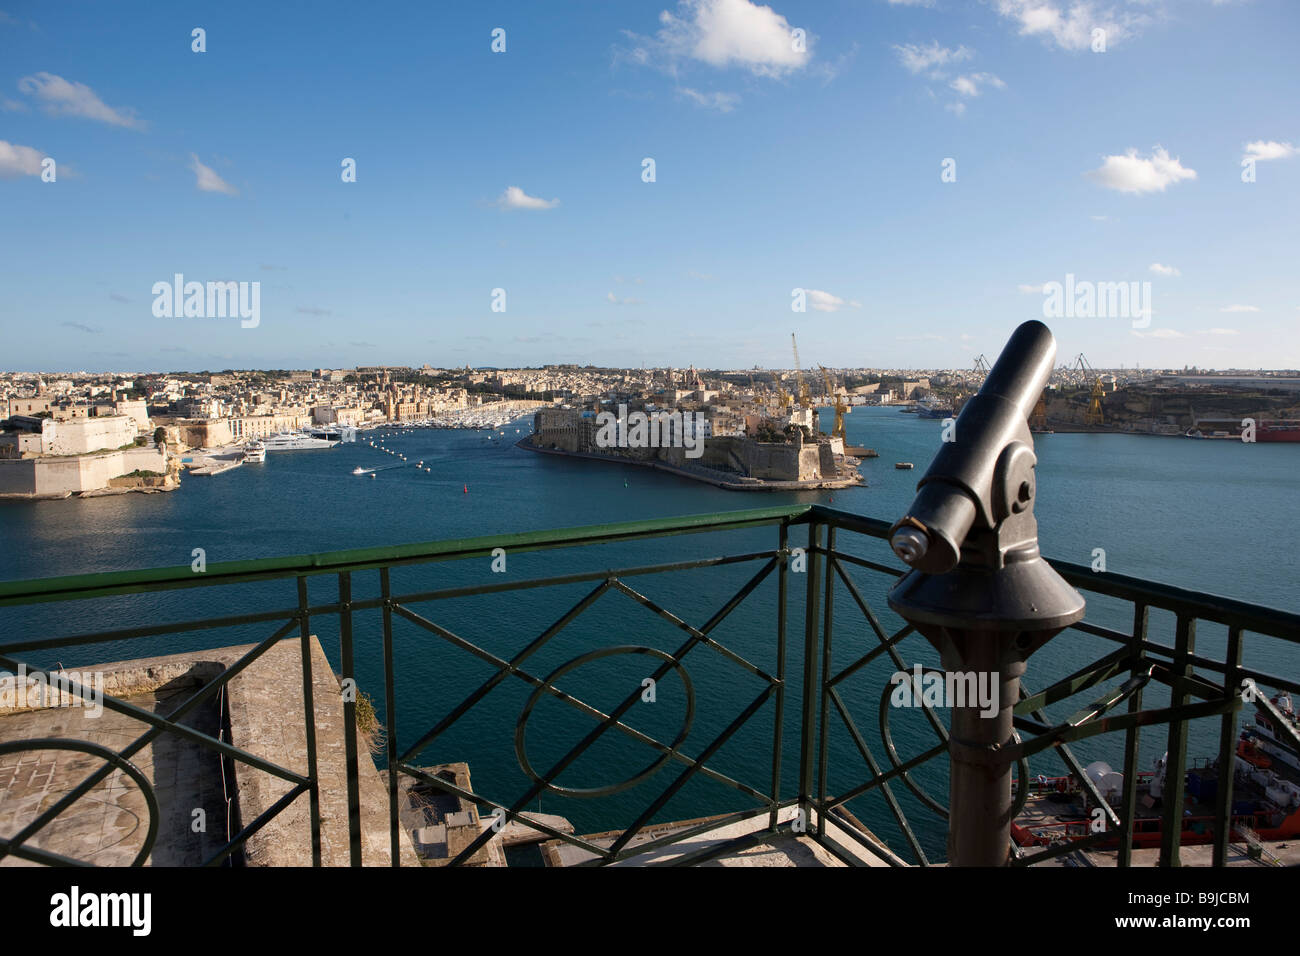 Grand Harbour, view of Senglea from the Upper Barracca Garden, part of the Three Cities, Valletta, Malta, Europe - Stock Image